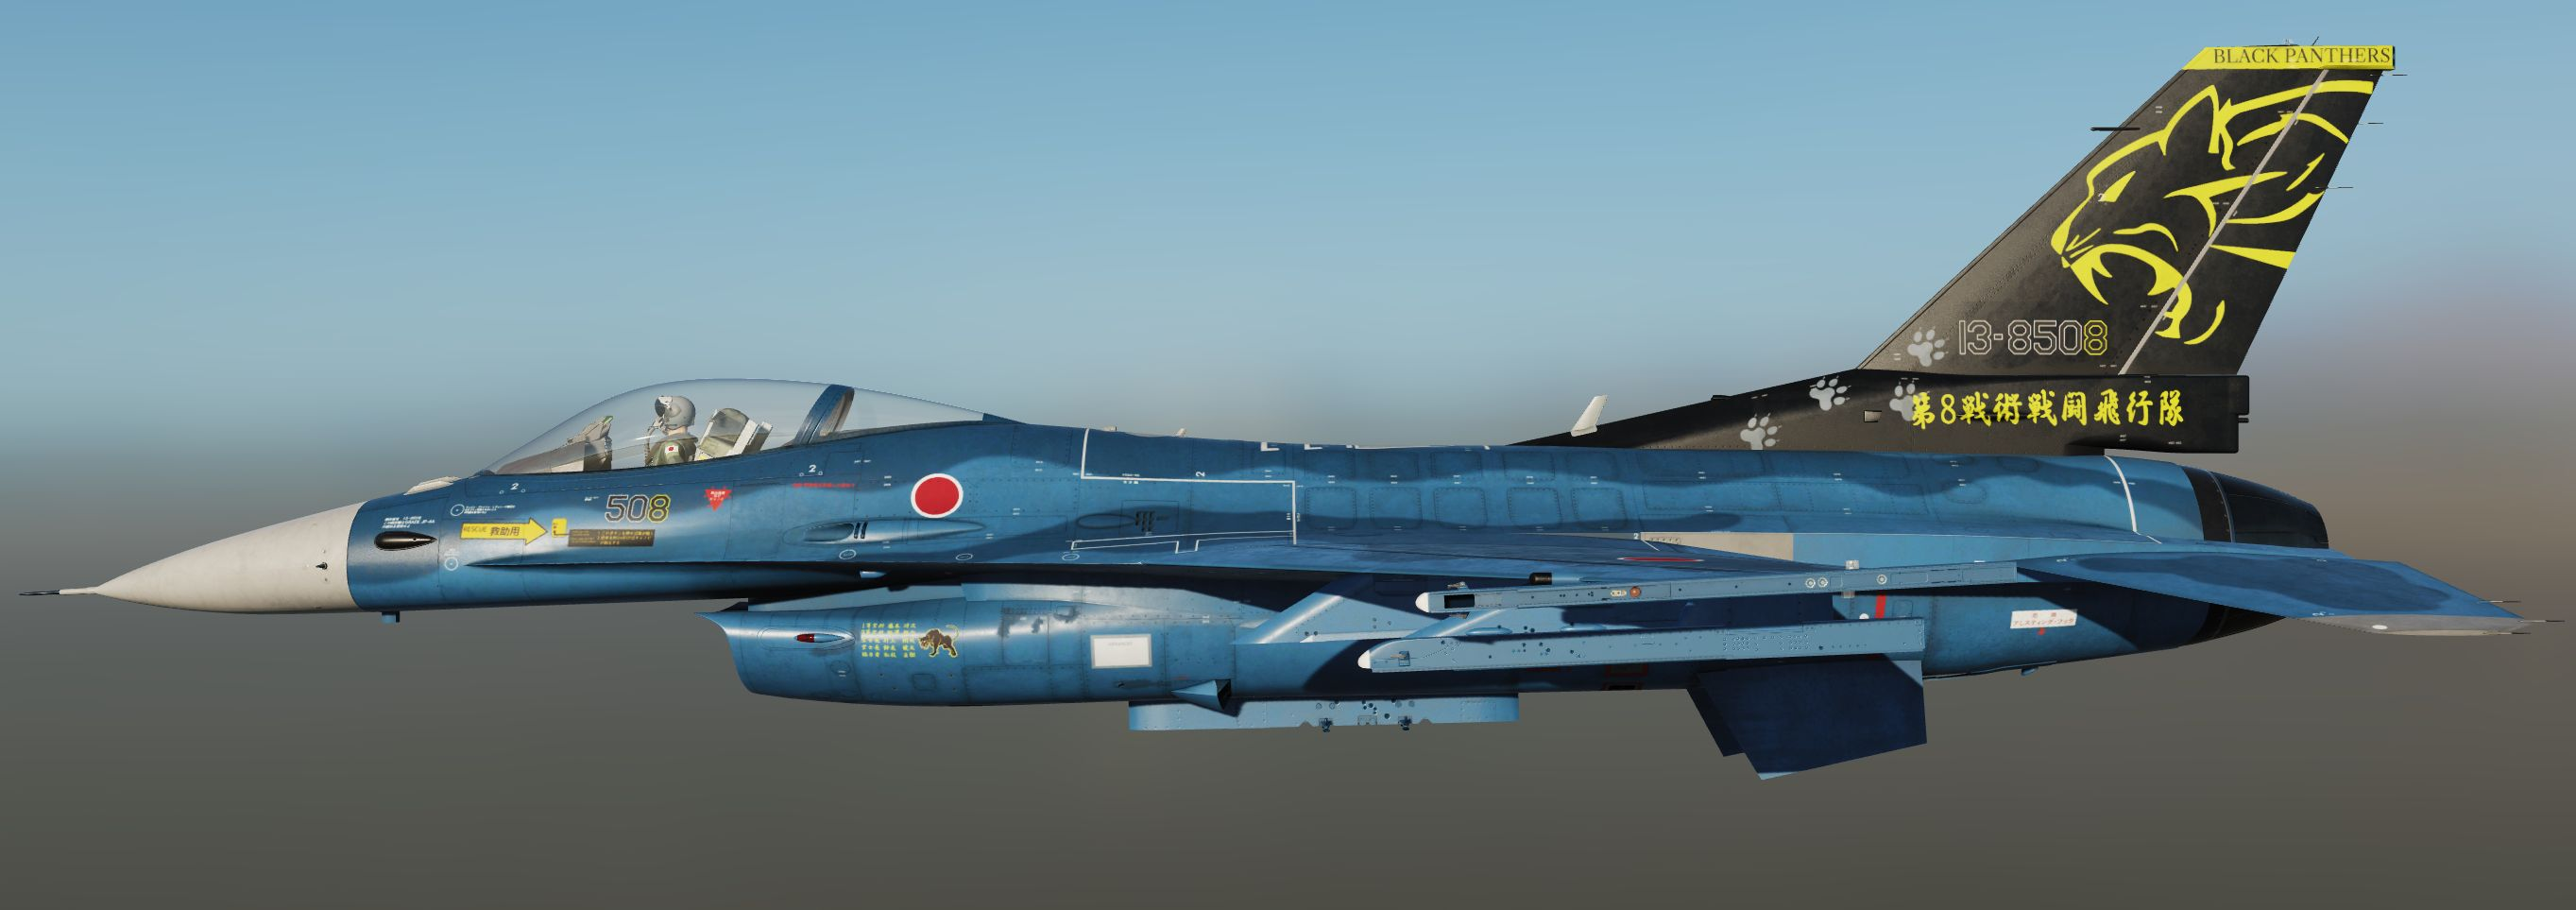 [Fictional] JASDF 8th TFS Tsuiki Airshow 2018 V2.01